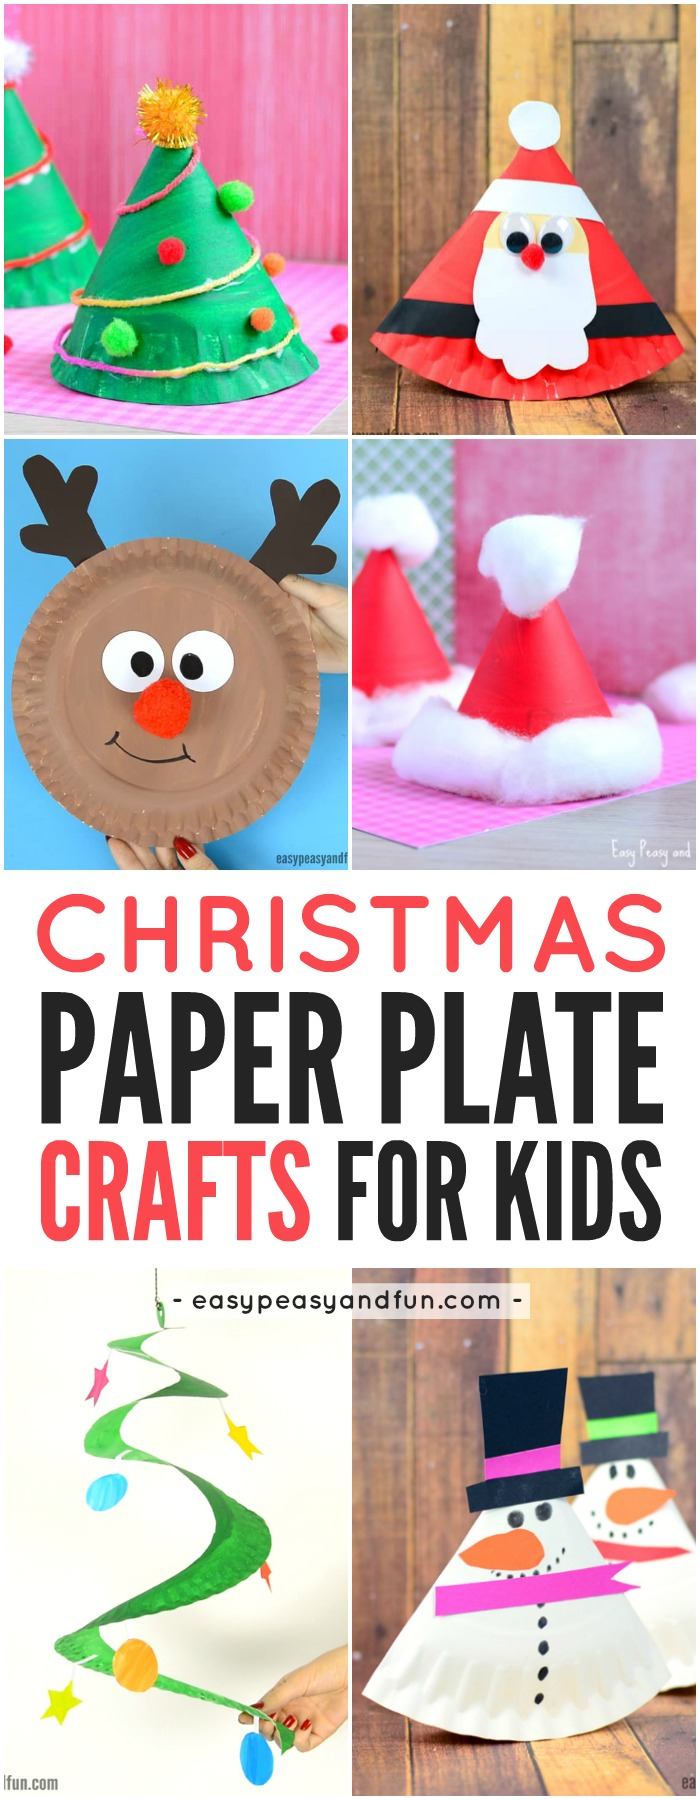 Paper Plate Christmas Crafts - Easy Peasy and Fun